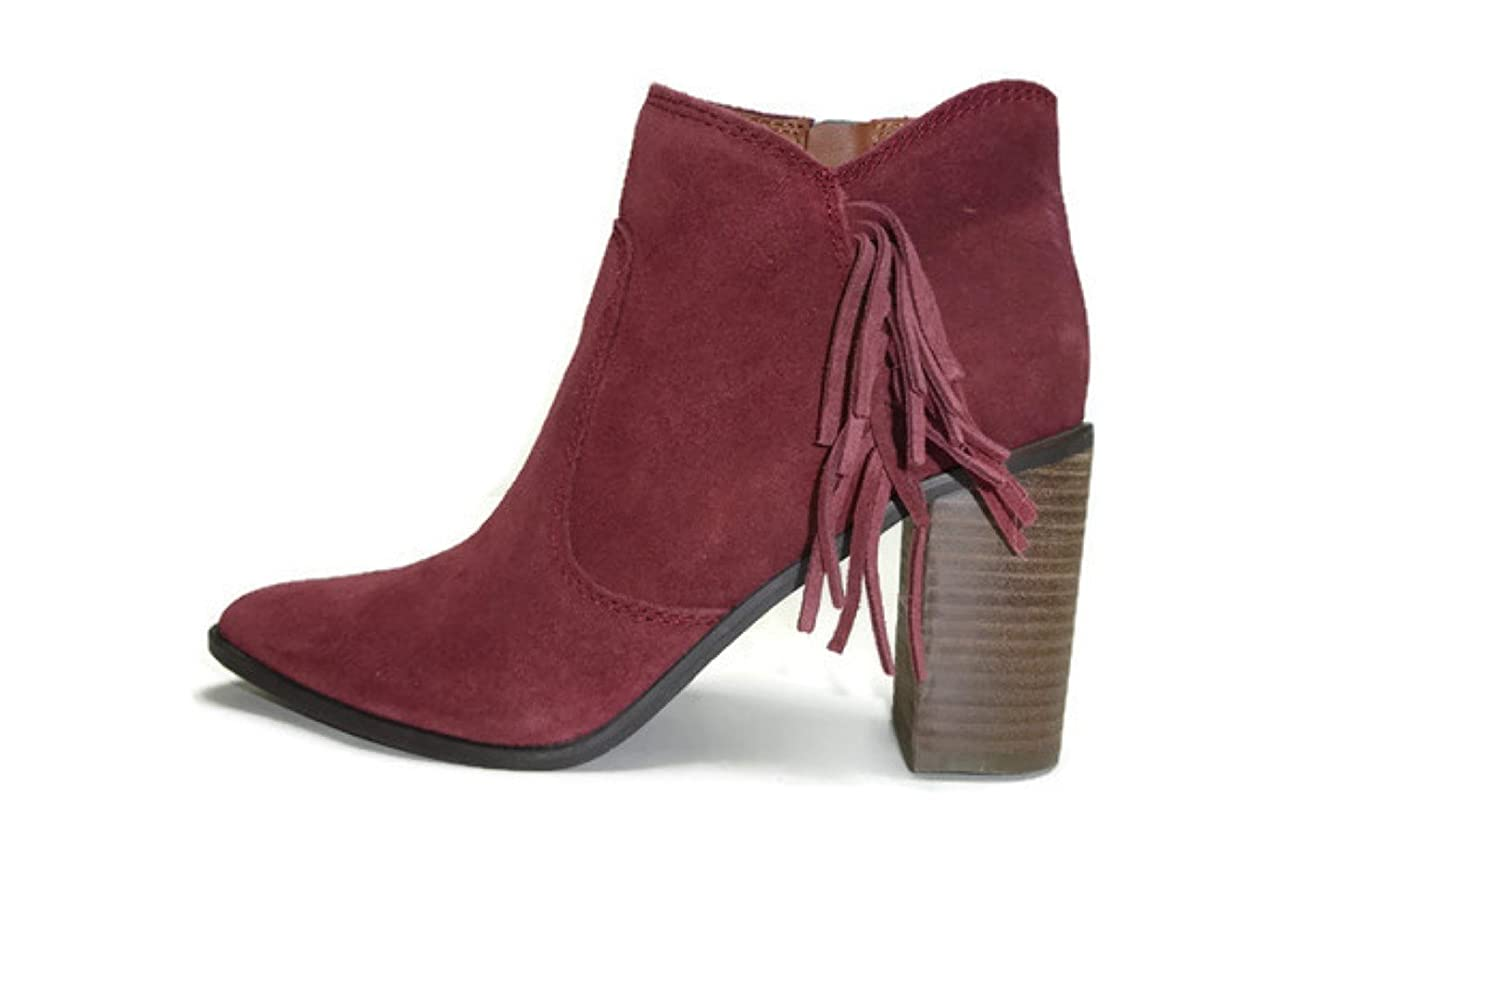 Lucky Brand Women's Mercerr Oiled Suede Ankle Boot, Beet 7.5 M